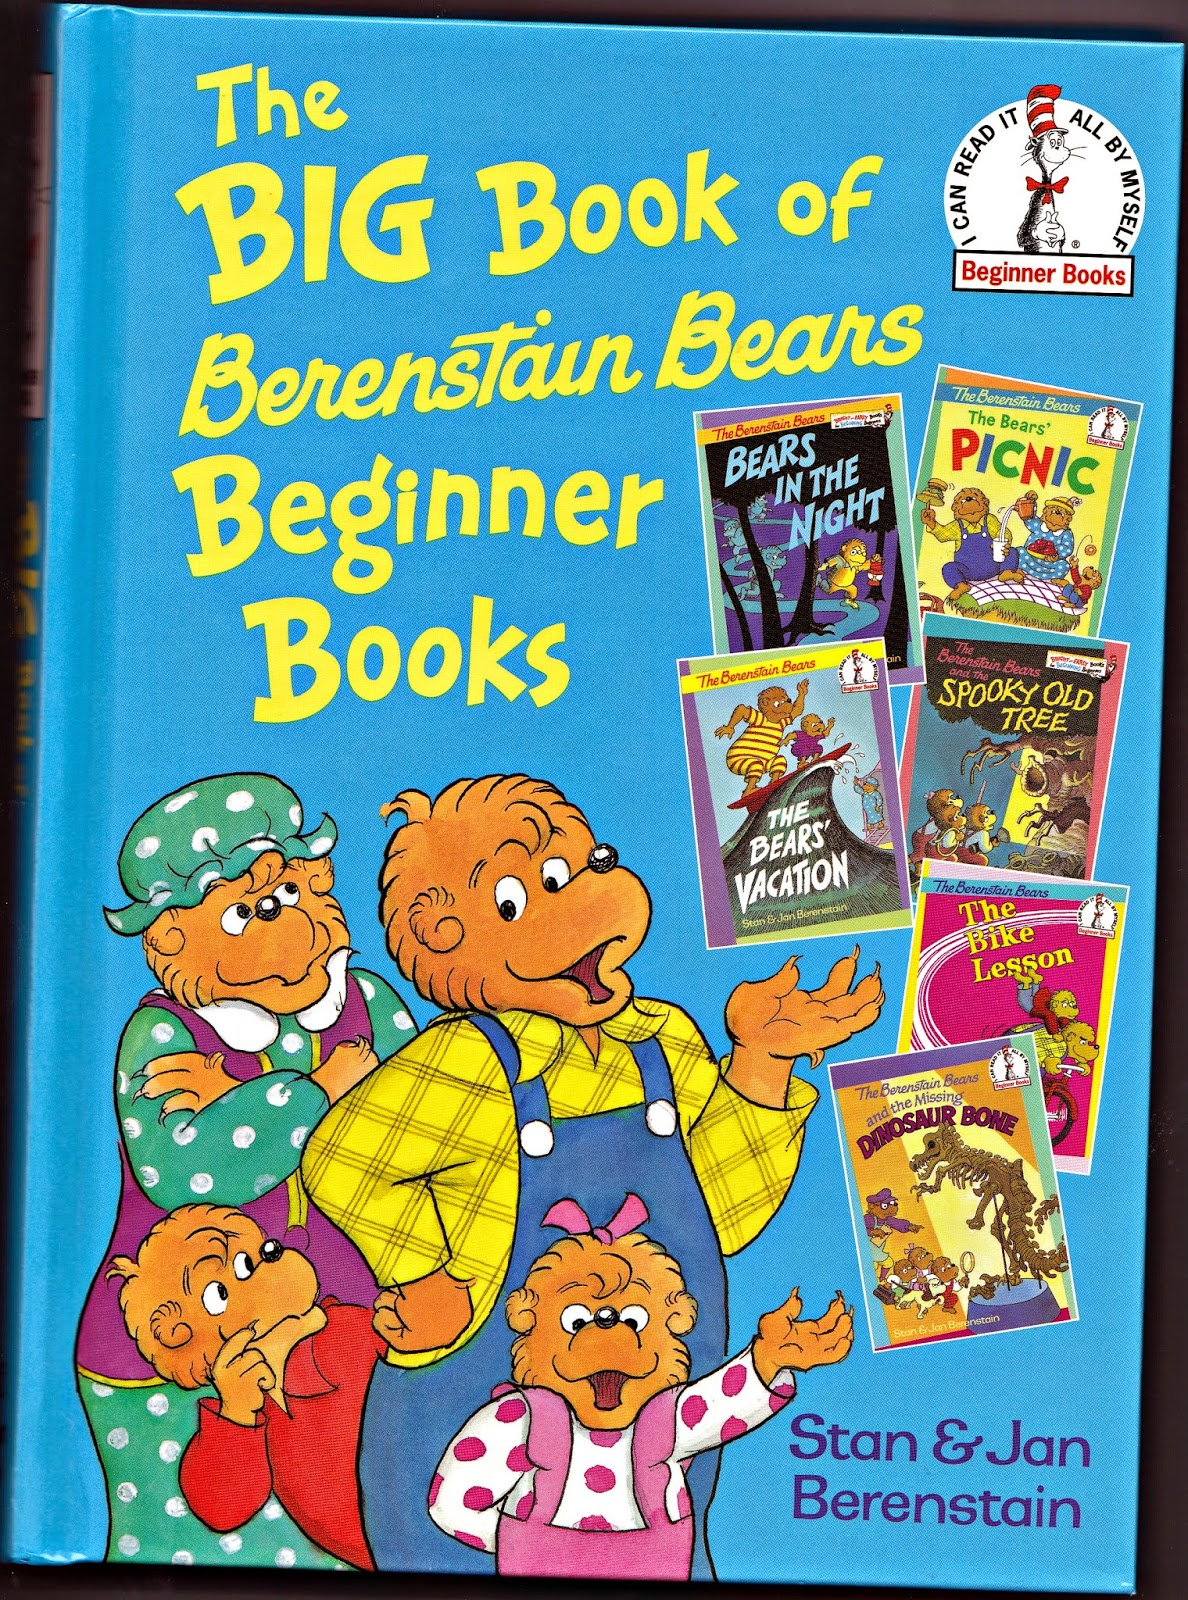 Berenstain Bears Old Book Cover : Vintage books for the very young big book of